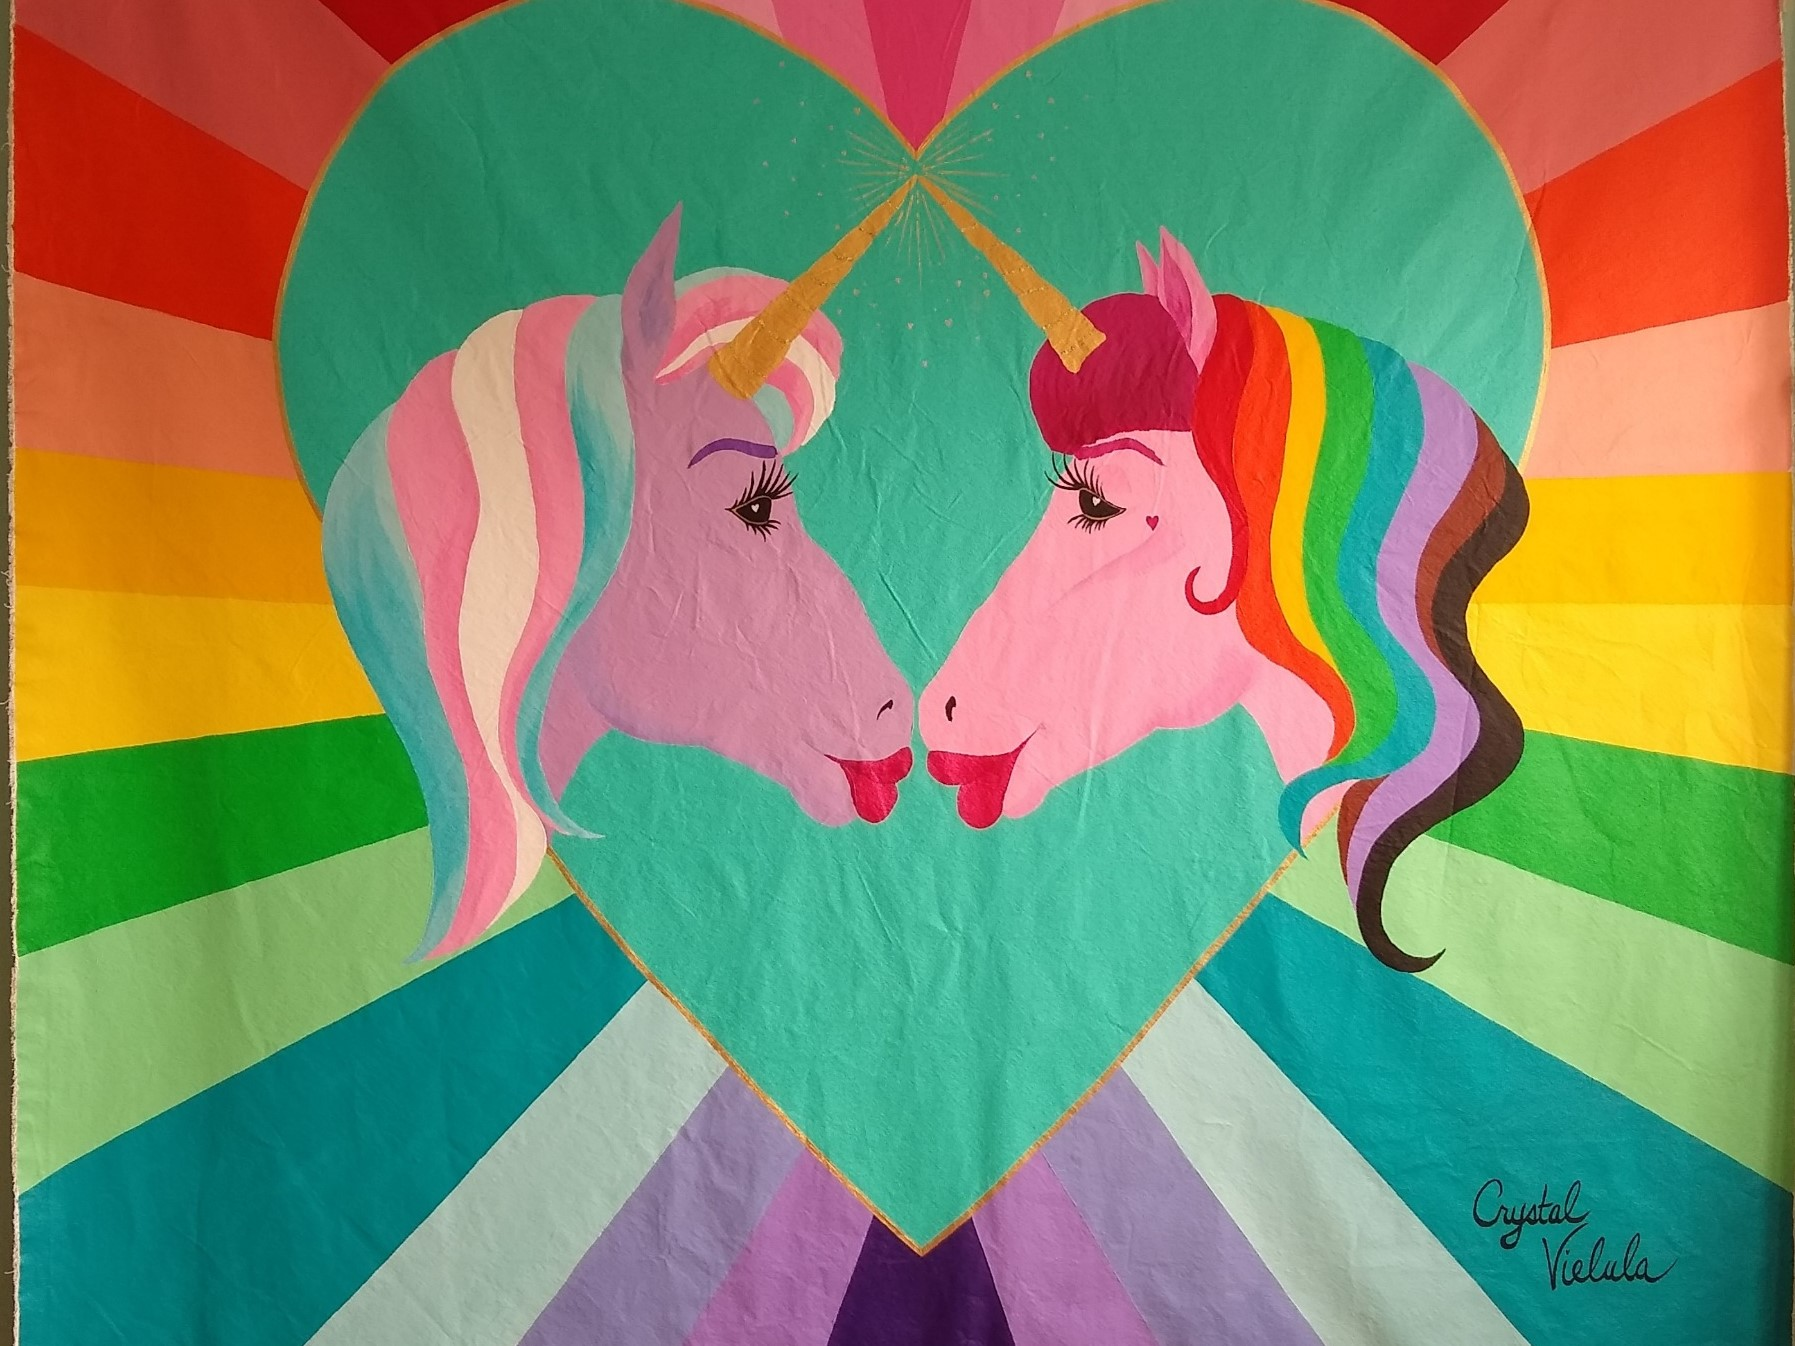 This is 8ft x 9ft mural by Crystal, will appear at SF Pride 2019, you can find at the T-Mobile installation at the Civic Center